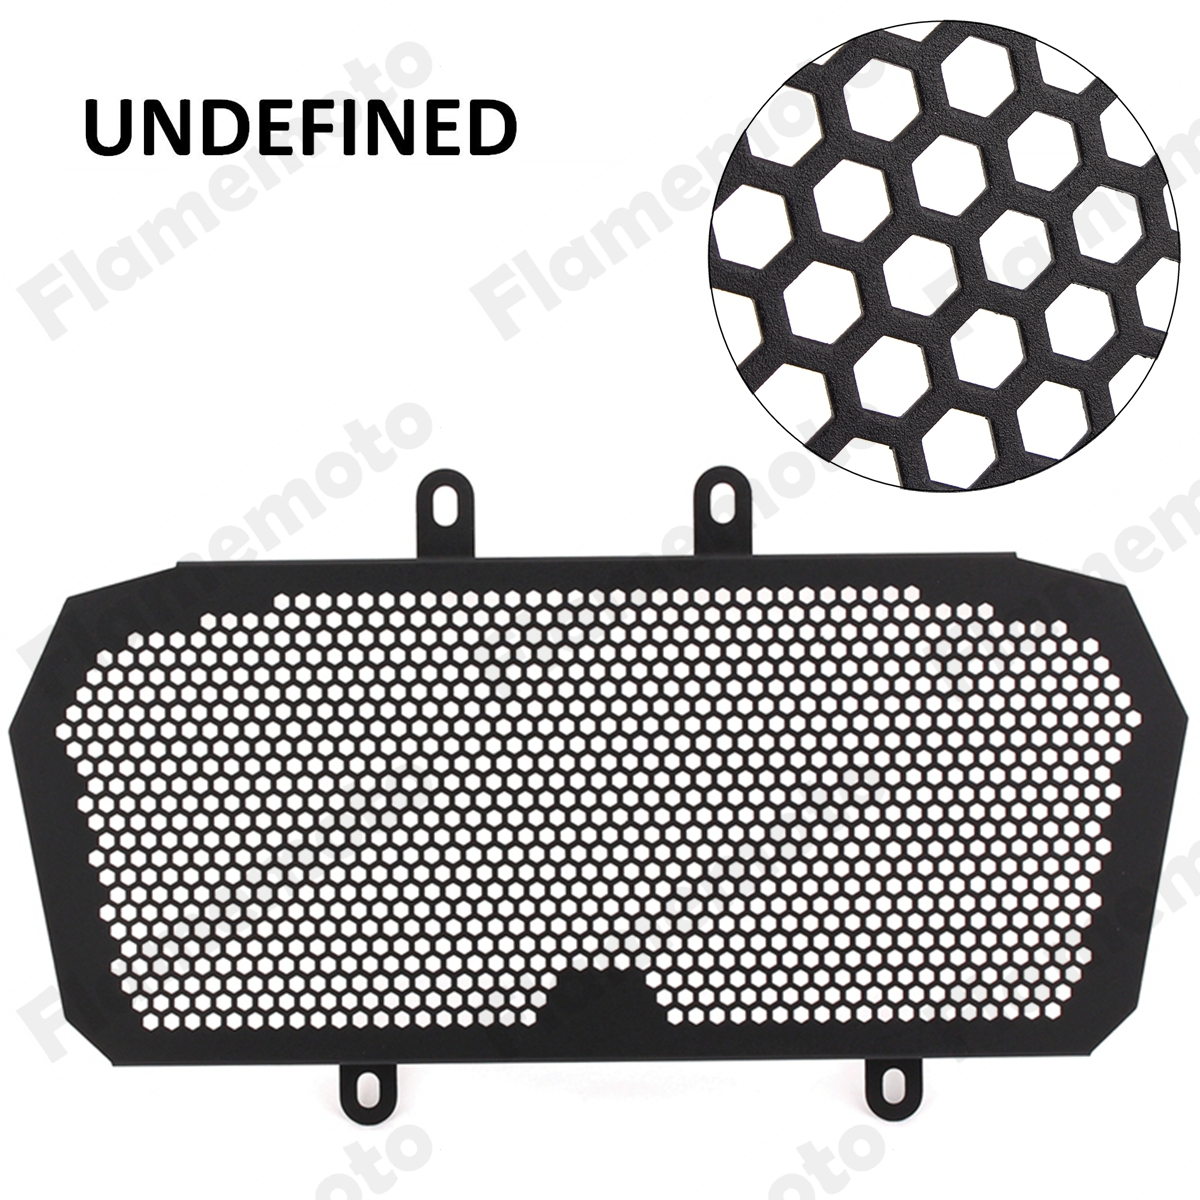 Black Motorcycle Bike Parts Radiator Protective Water Cooled Grill Cover Guard For KTM Duke 390 2013 2014 2015 2016 UNDEFINED motorcycle radiator protective cover grill guard grille protector for kawasaki z1000sx ninja 1000 2011 2012 2013 2014 2015 2016